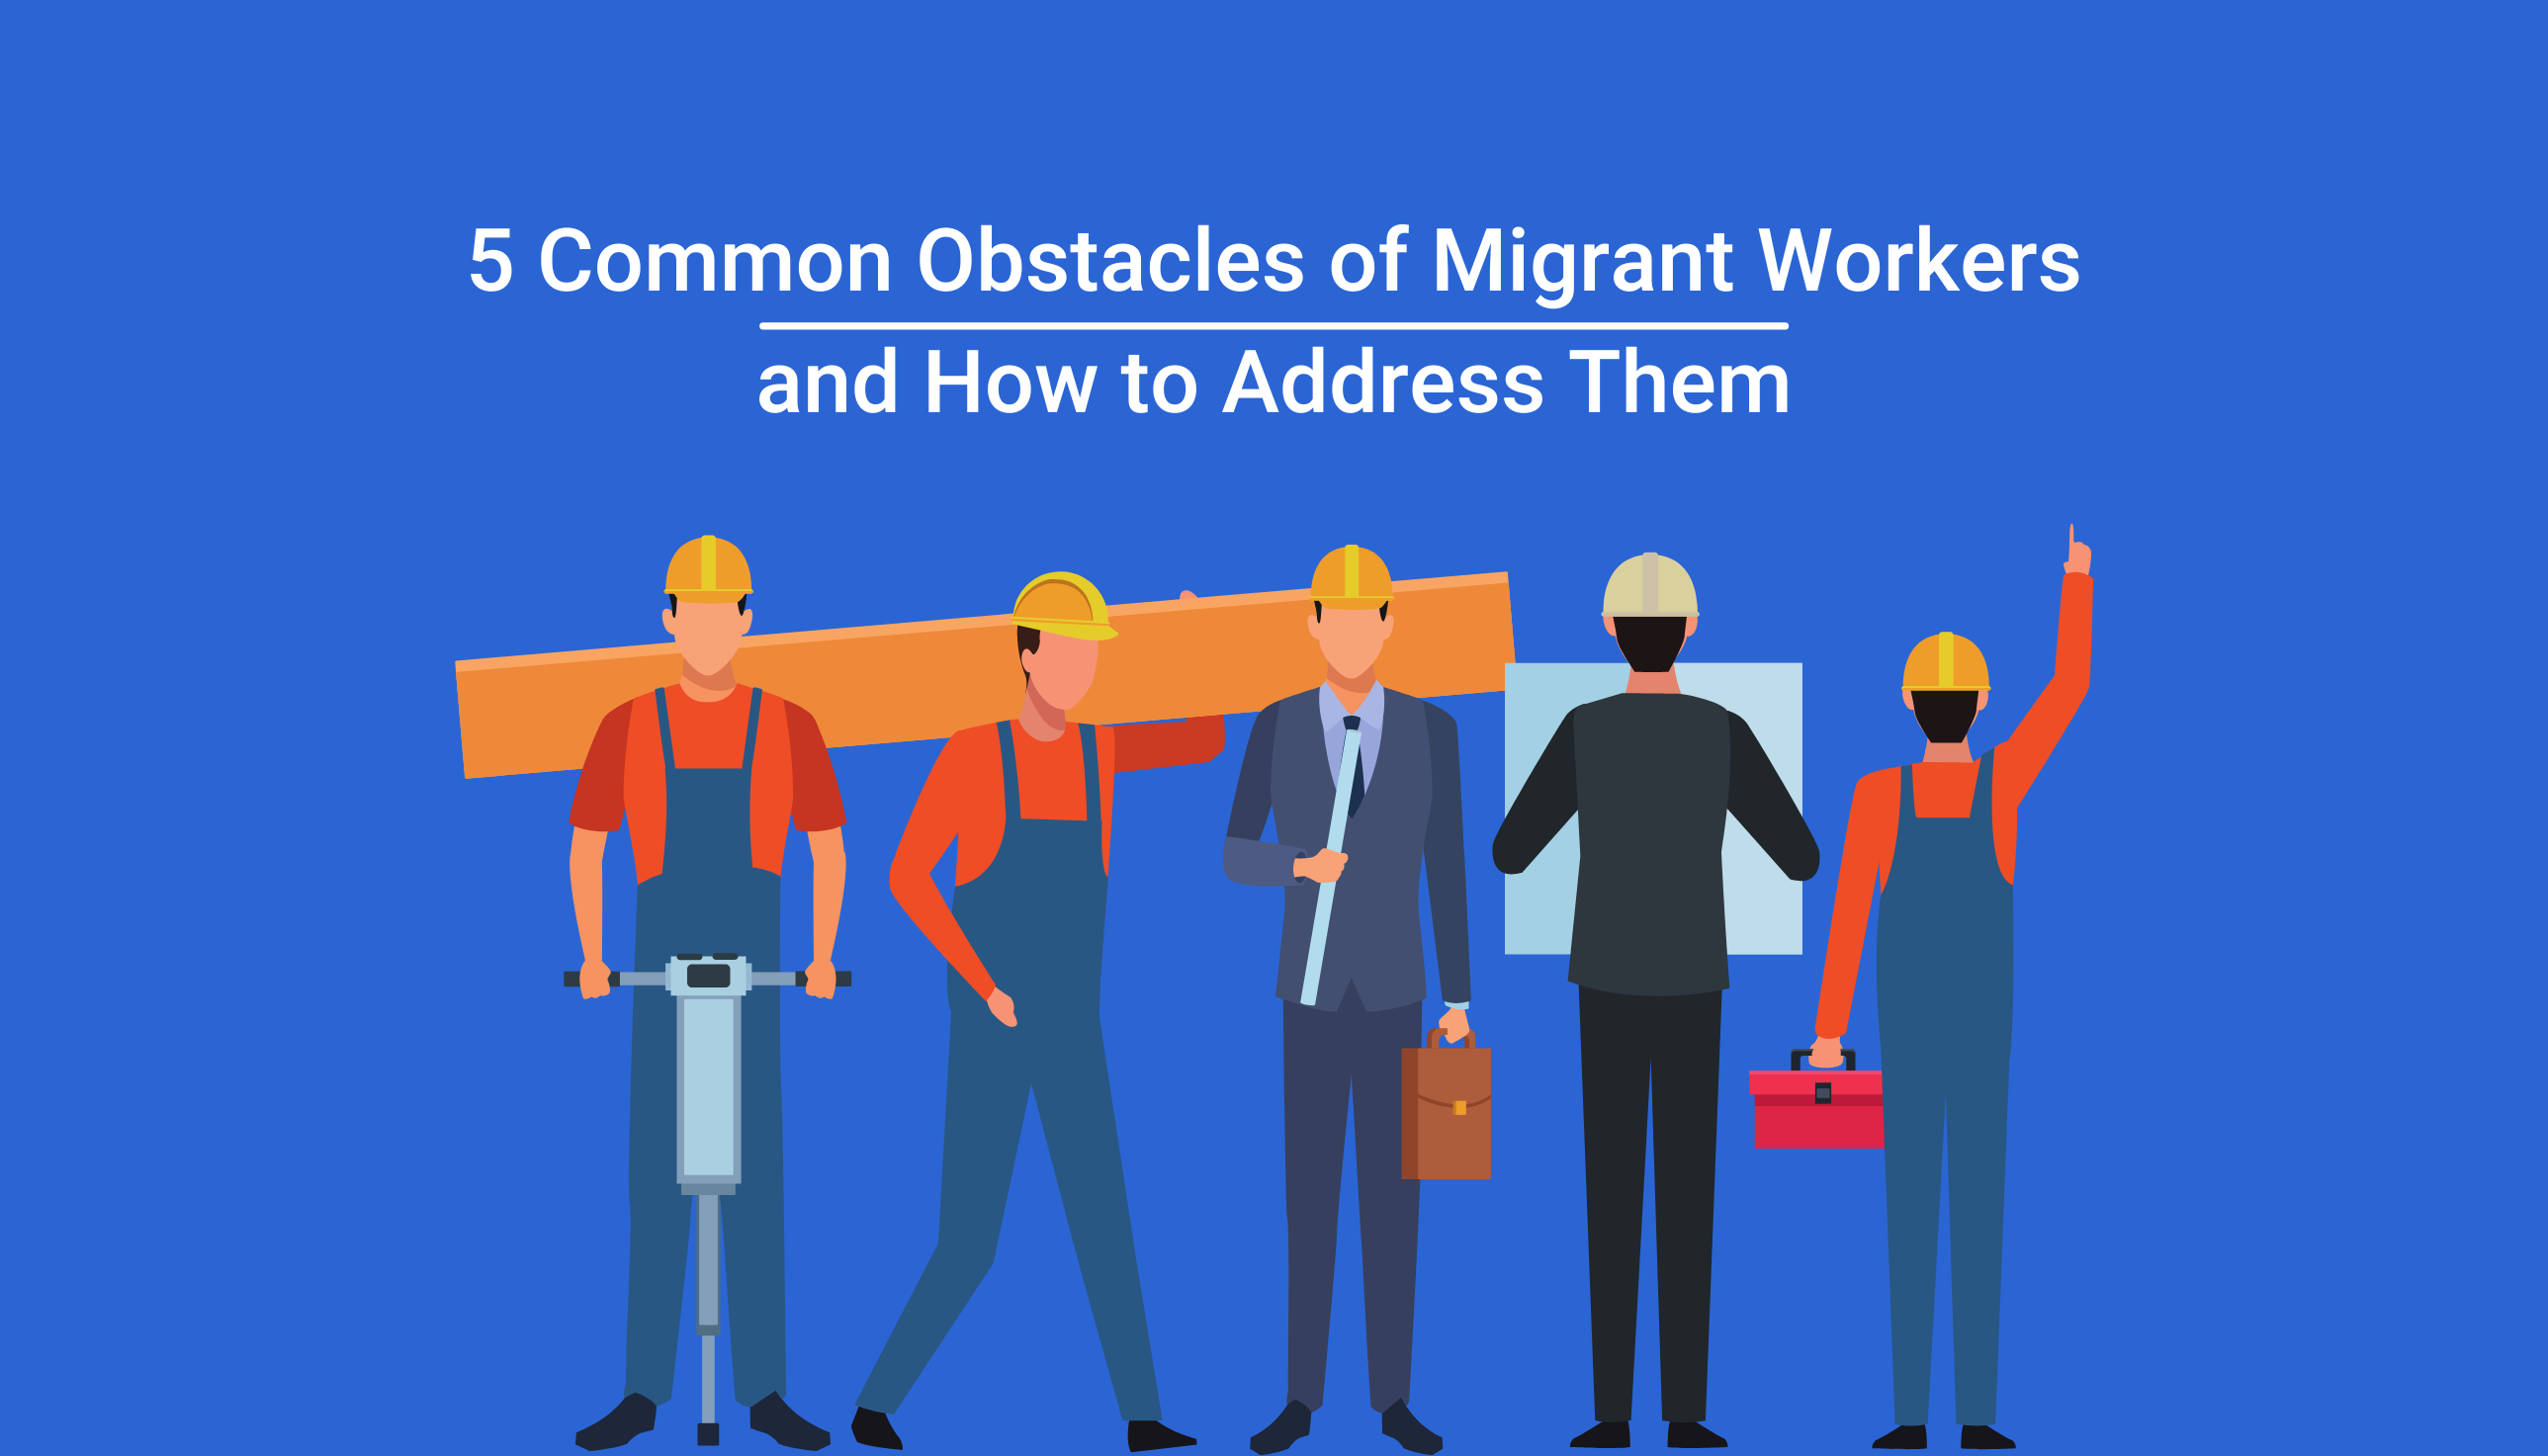 5 Common Obstacles of Migrant Workers and How to Address Them